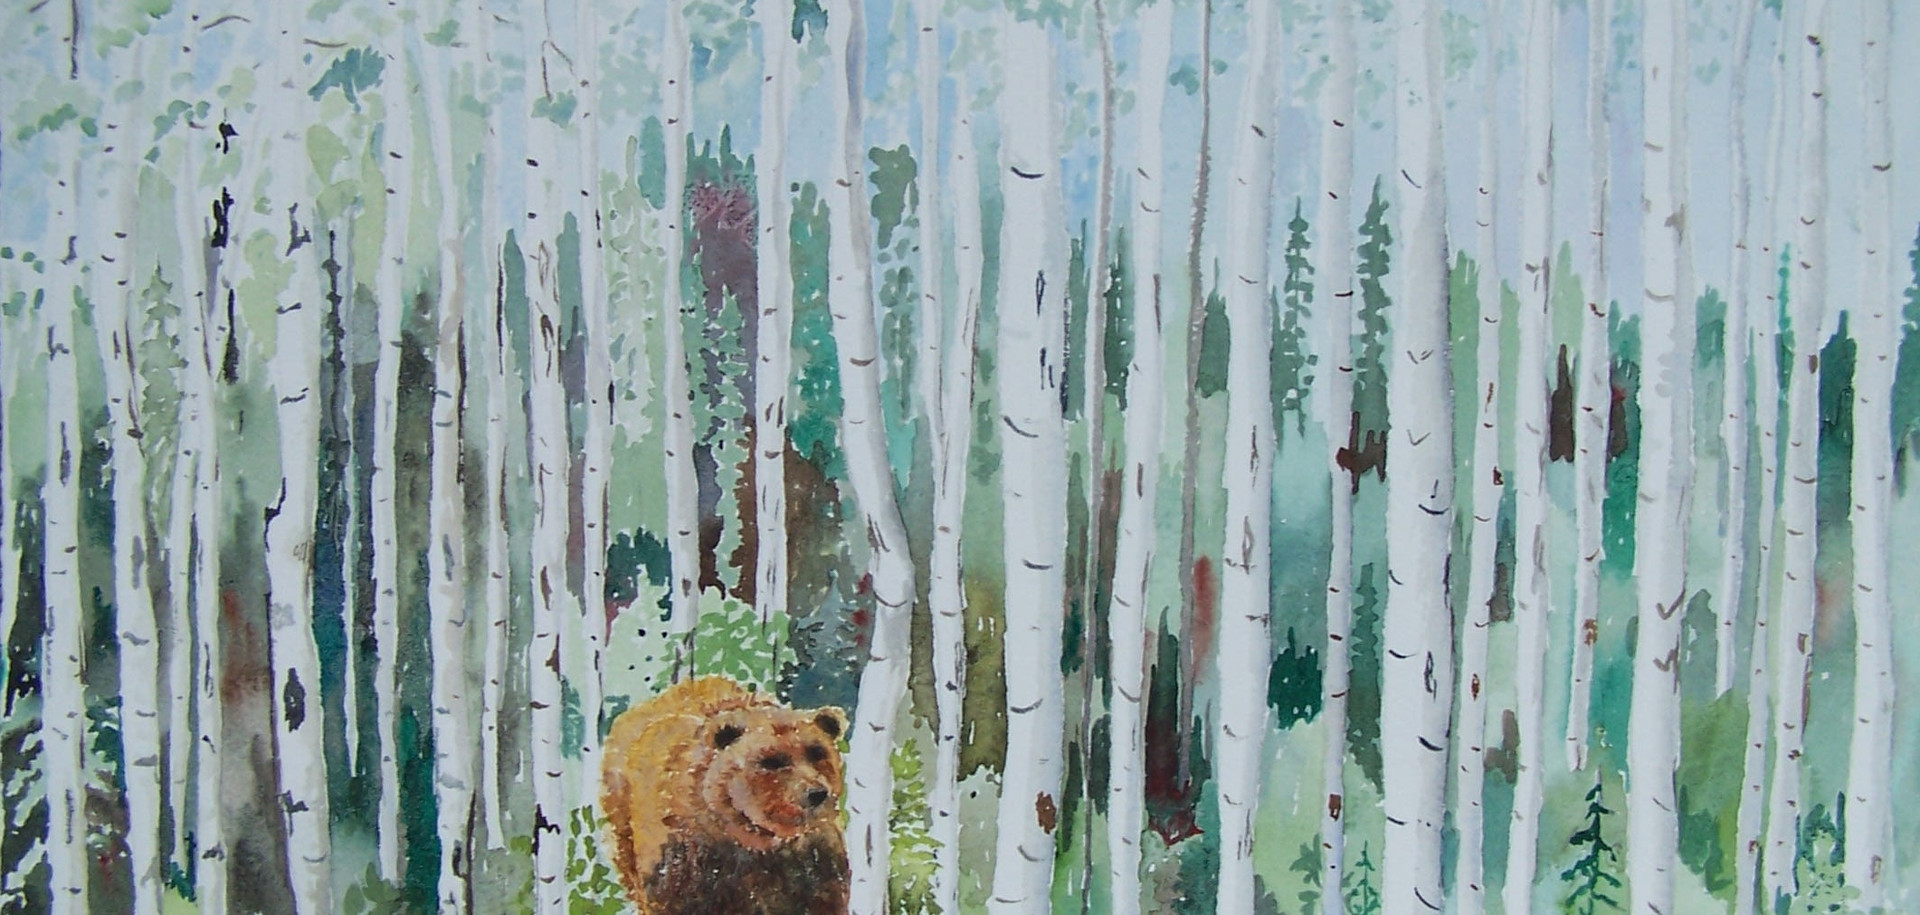 532-Grizzly in woods pntg.jpg